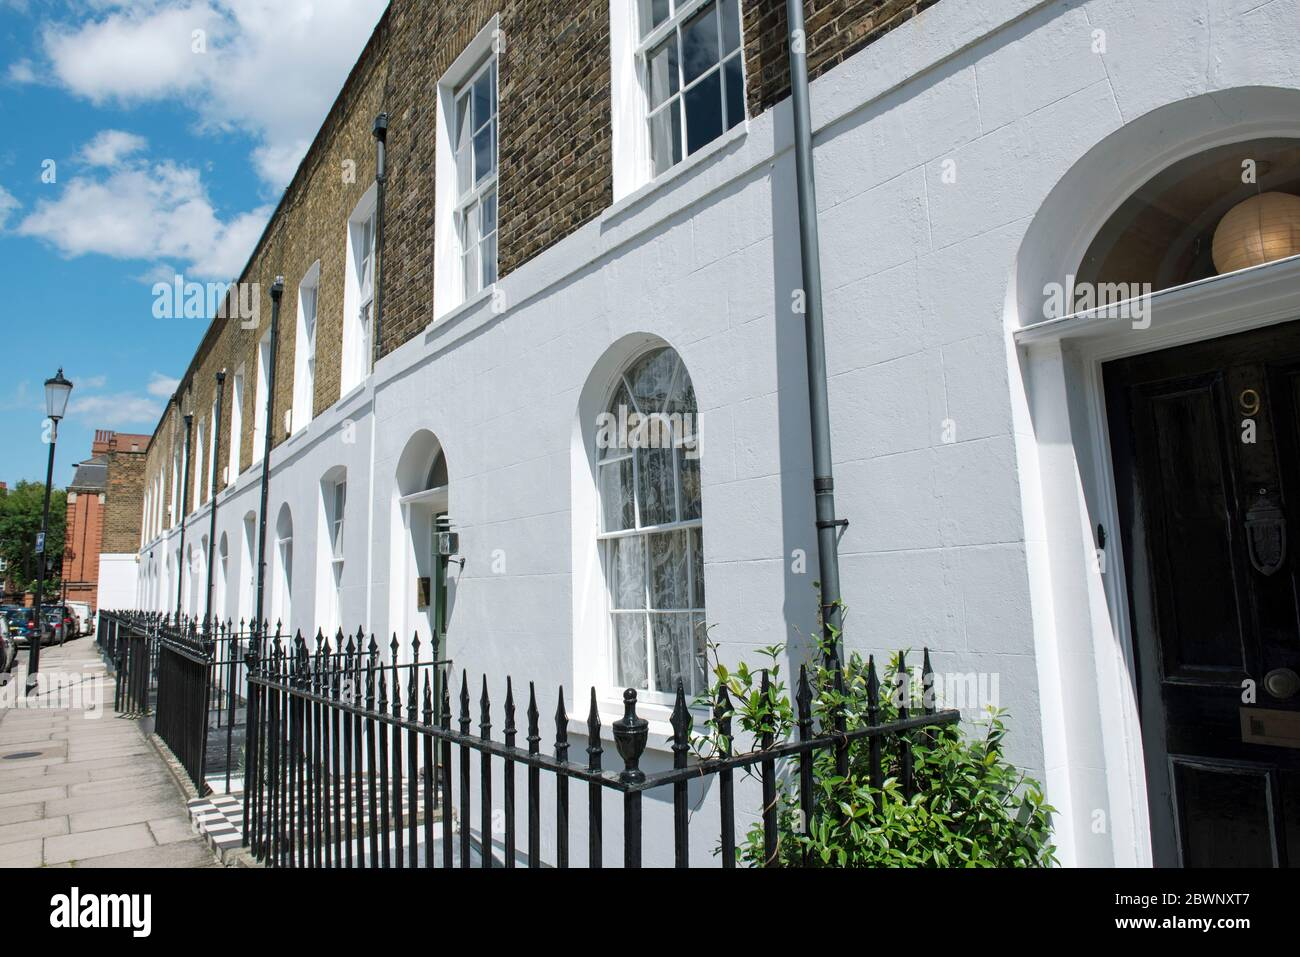 Case a schiera con ringhiere St Luke's Street Royal London Borough of Kensington & Chelsea Foto Stock